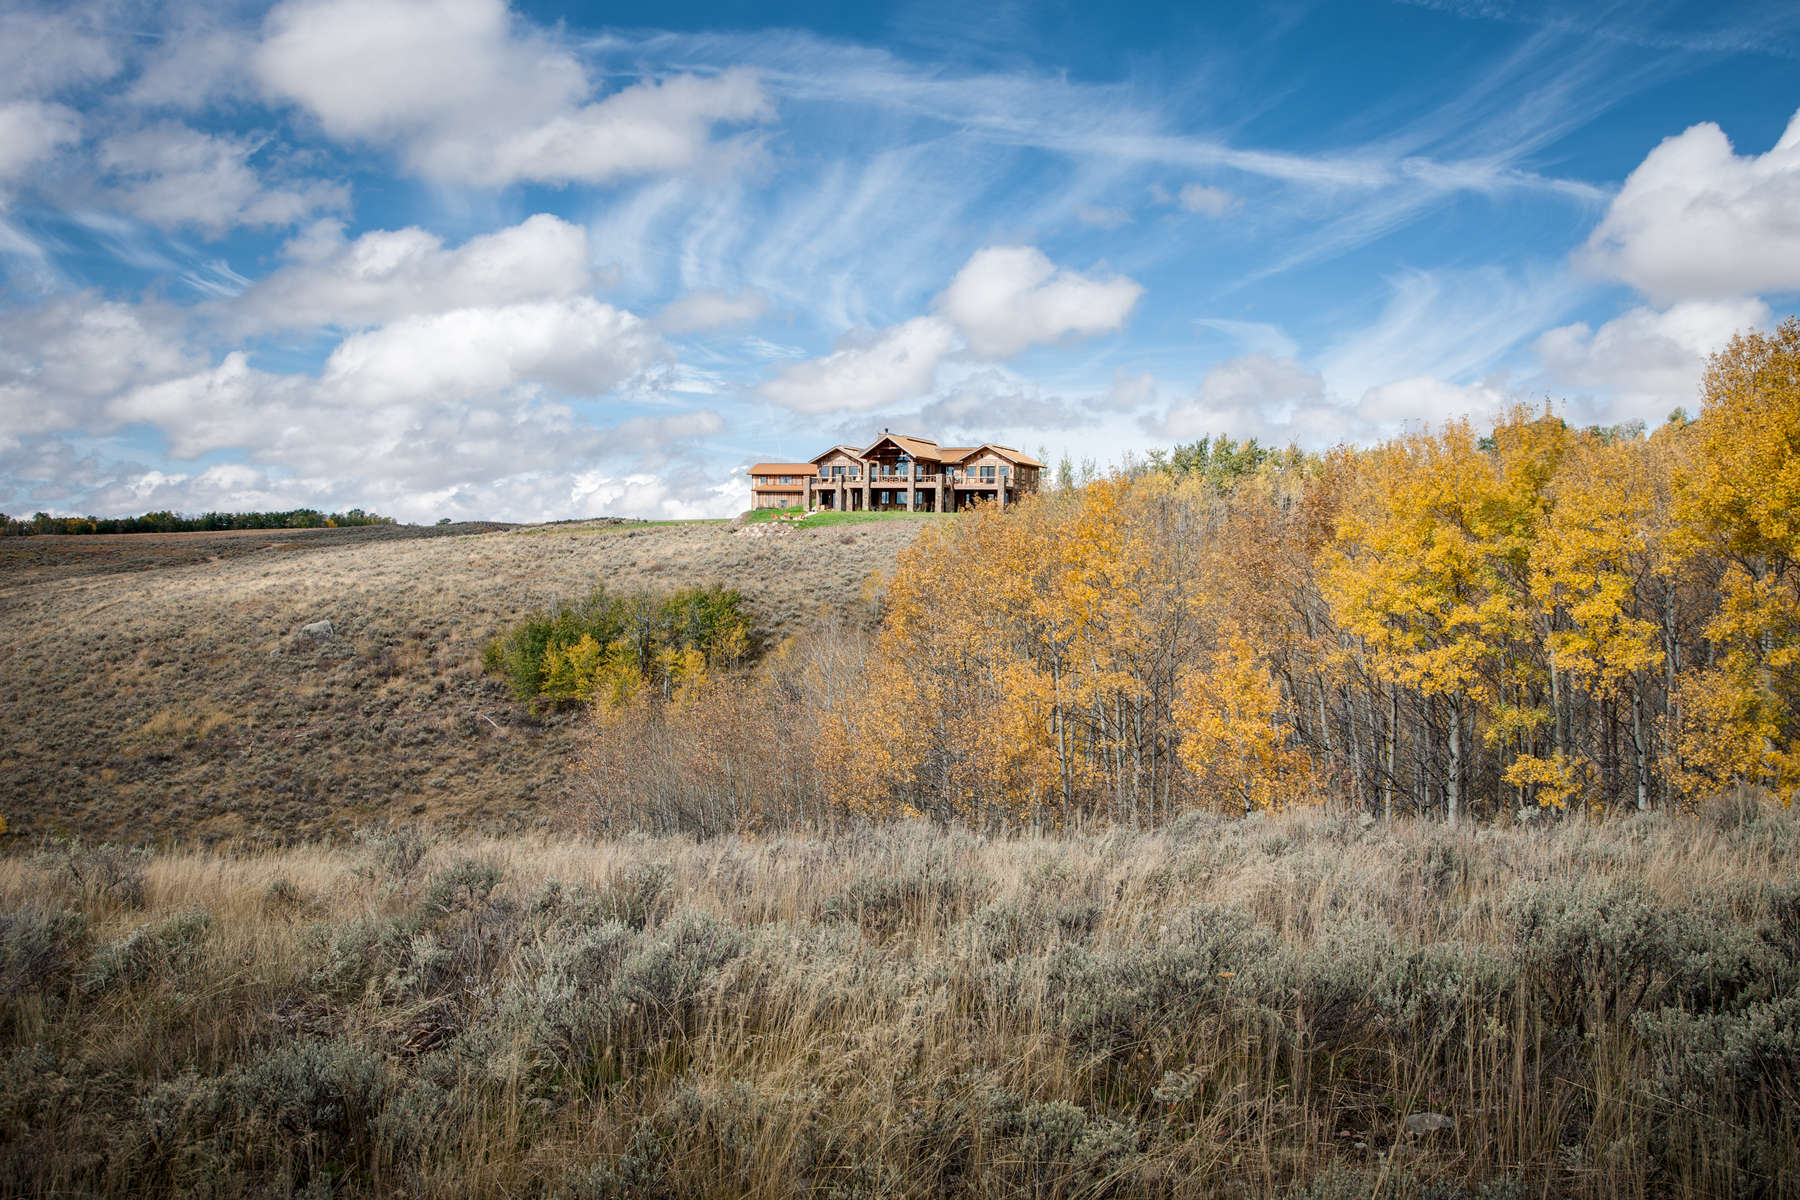 Long distance view of a mountain rustic home surrounded by rolling hills and golden stands of Aspen trees in eastern Idaho.